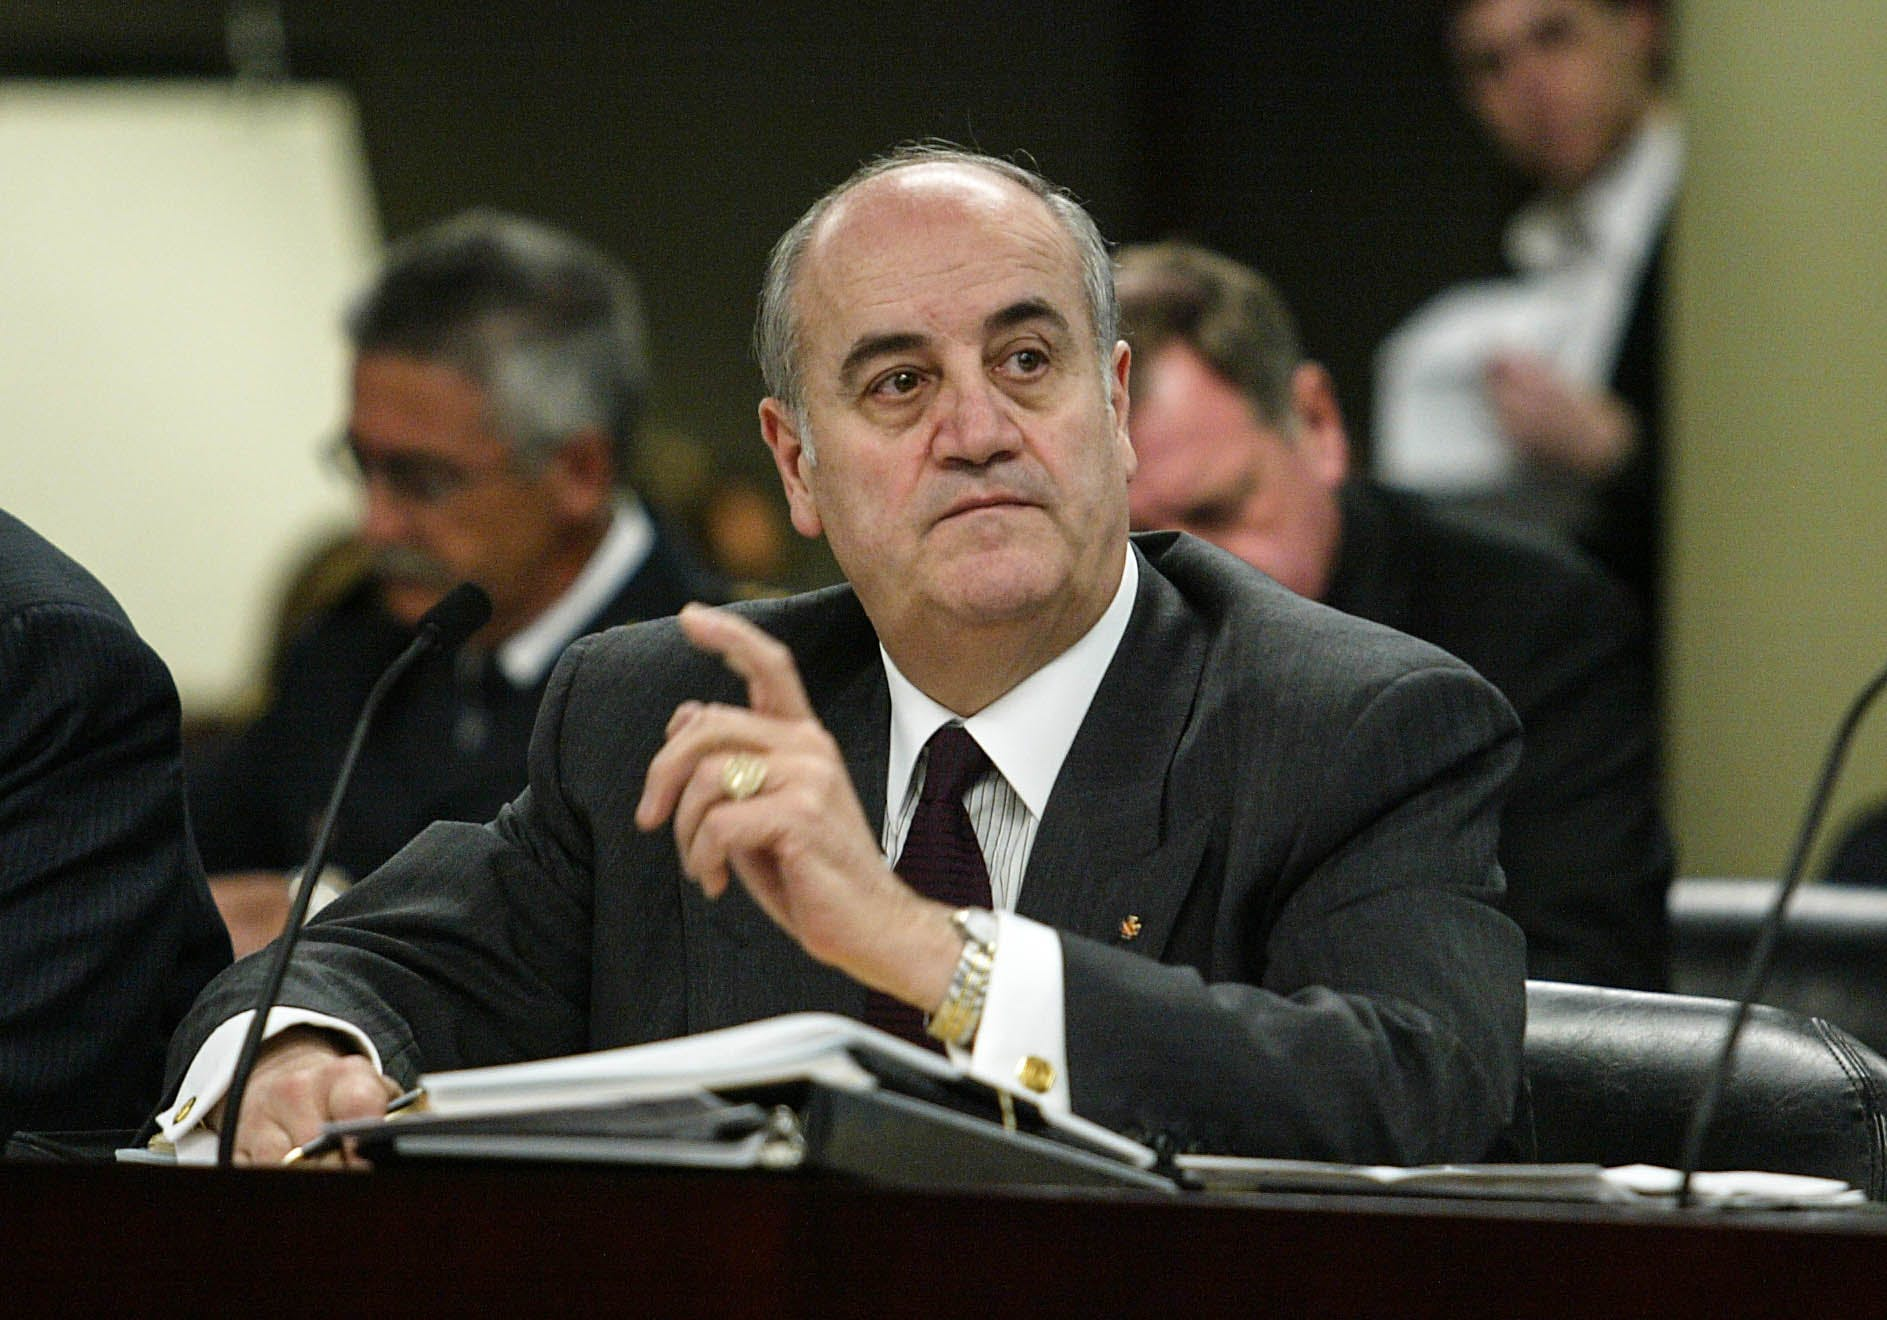 Fantino  Cannabis Consumers Would Rather Pay a Premium Than Buy Product From the Black Market: Study